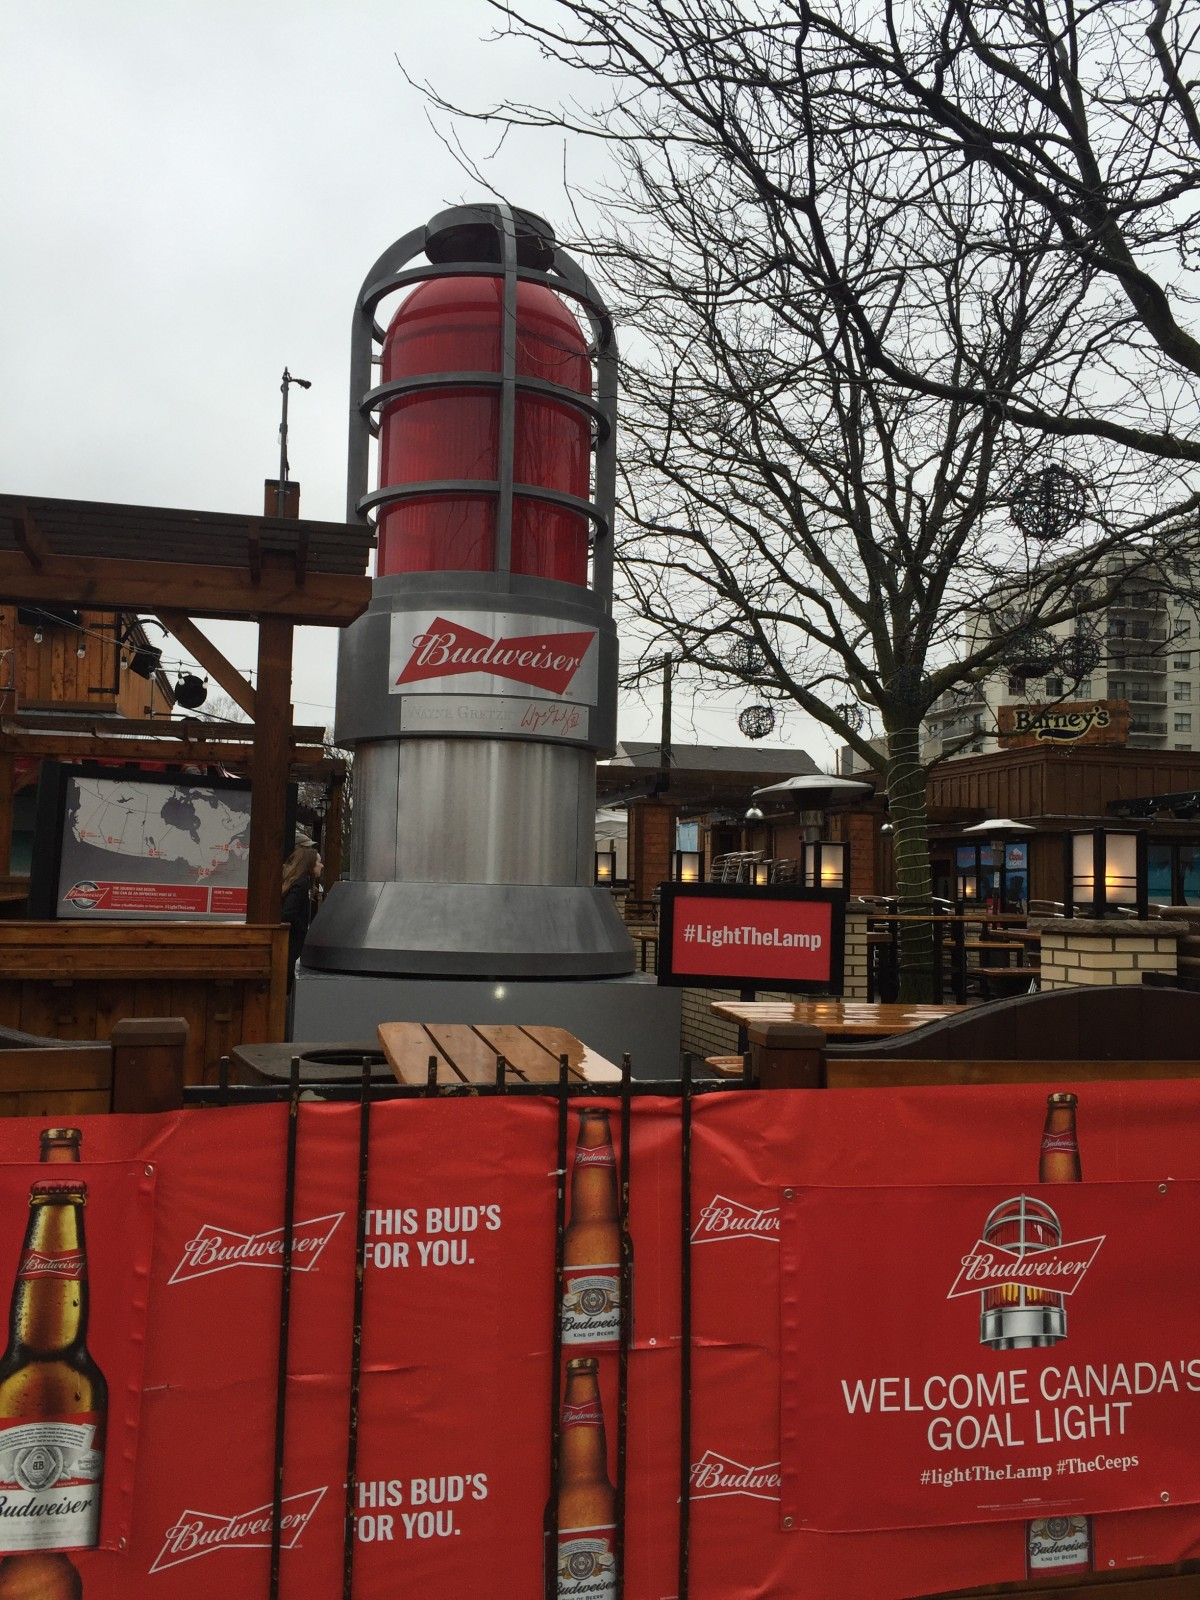 London welcomes Canada Goal Light